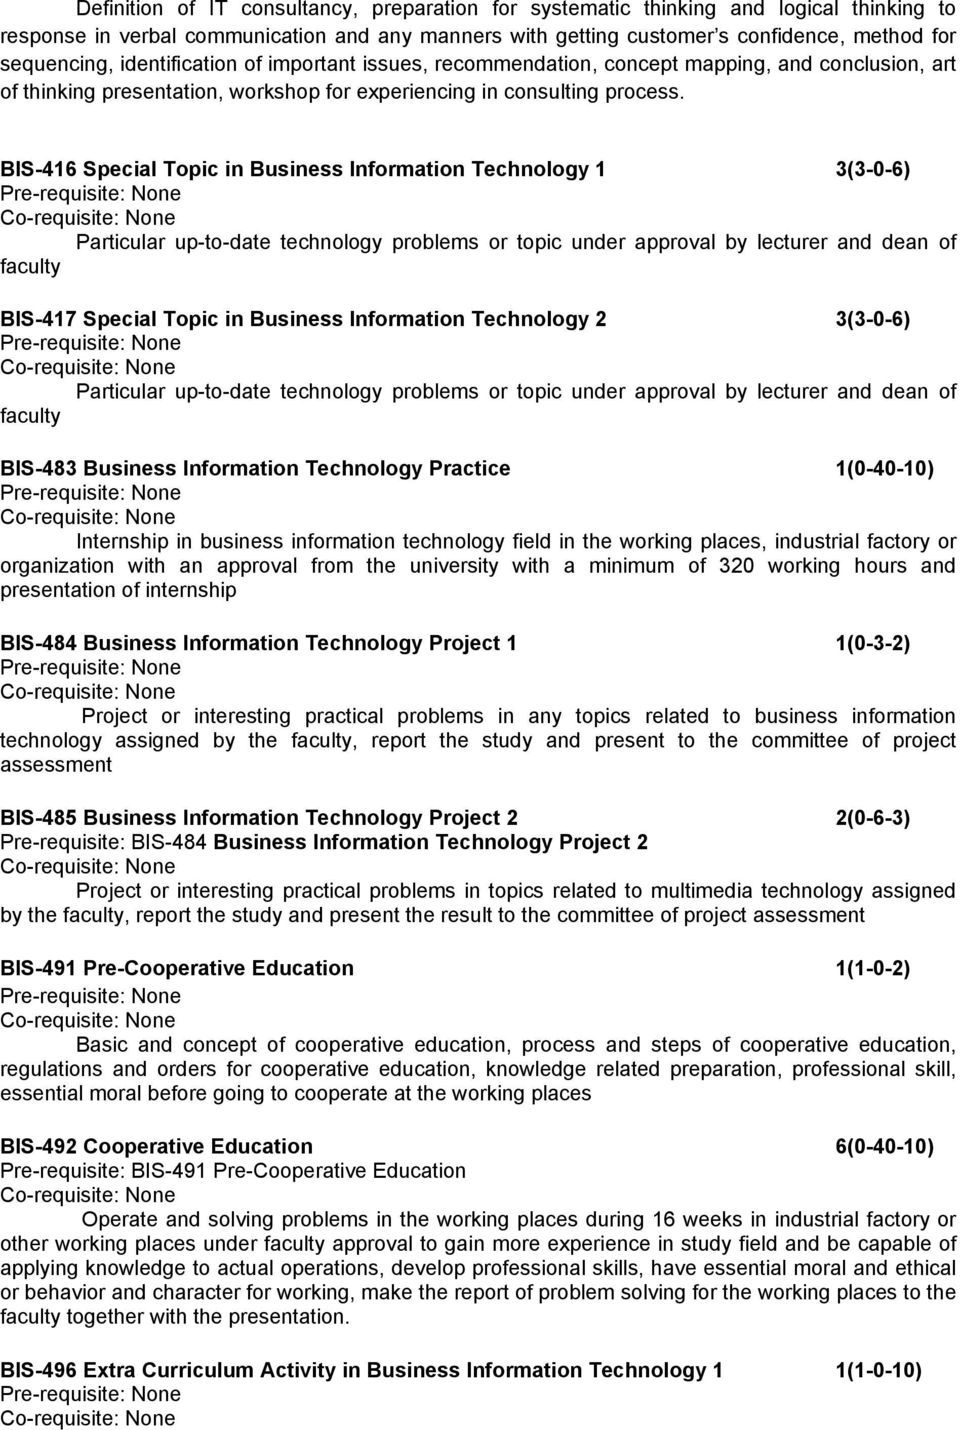 interesting information technology topics